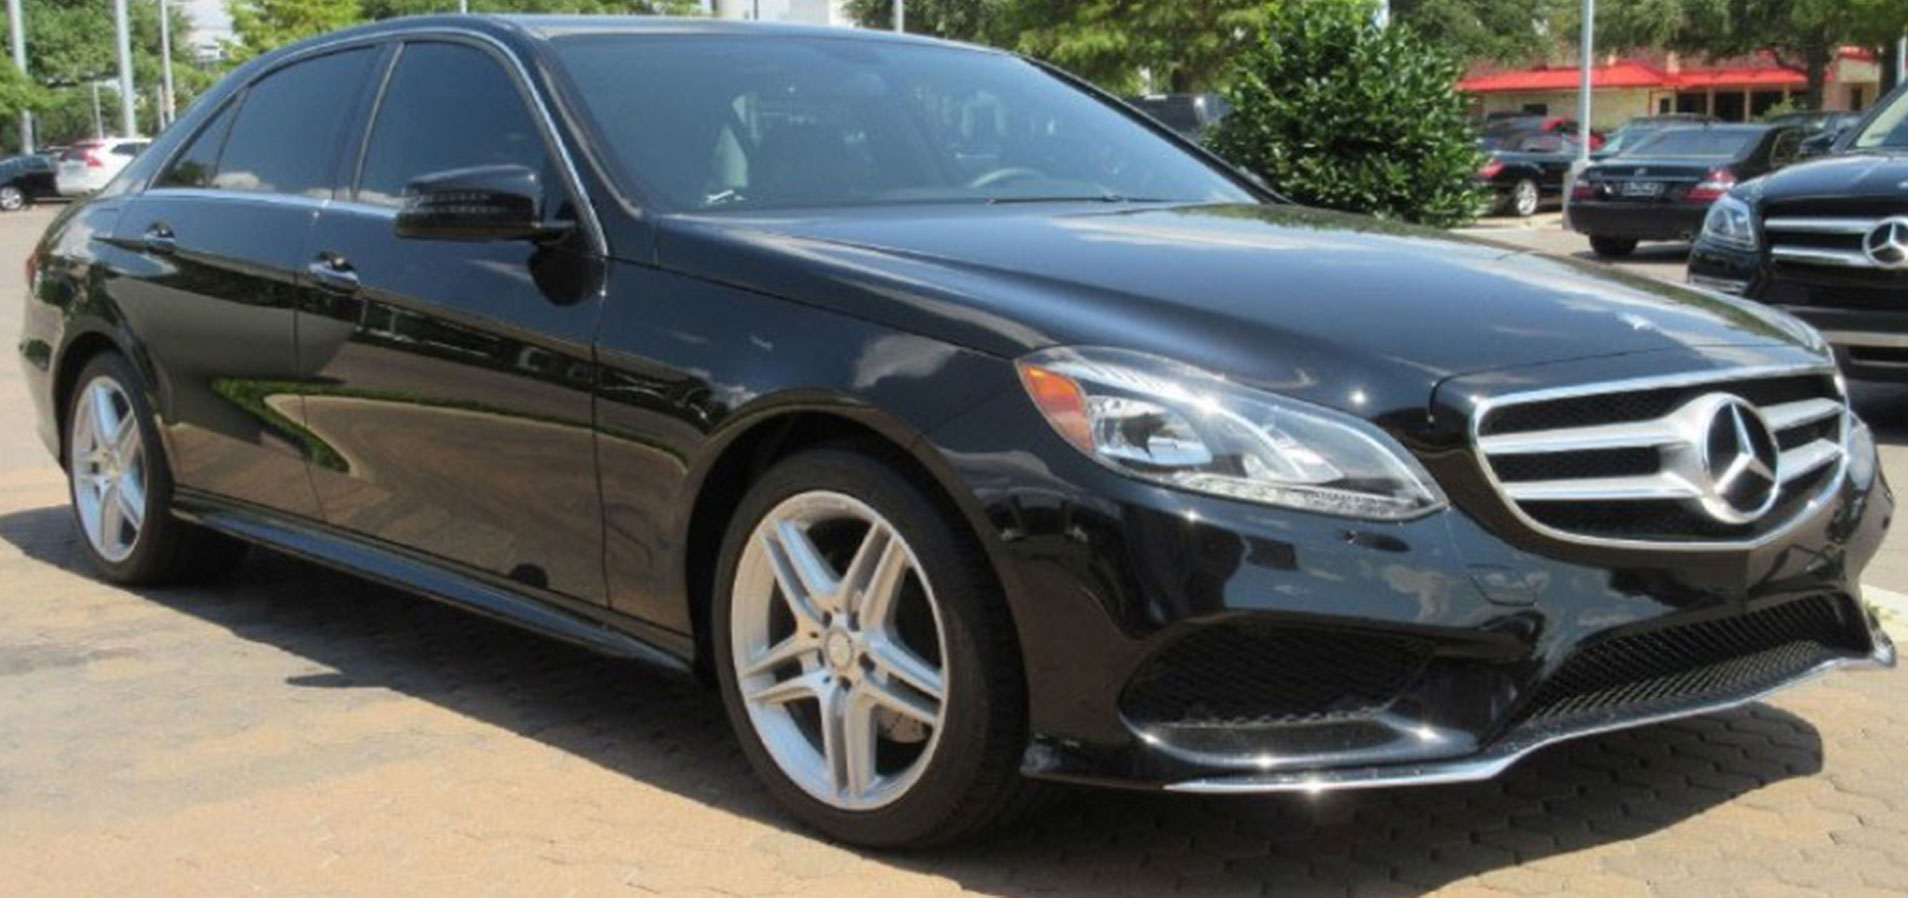 Business corporate travel services dallas fort worth for Mercedes benz of dallas fort worth